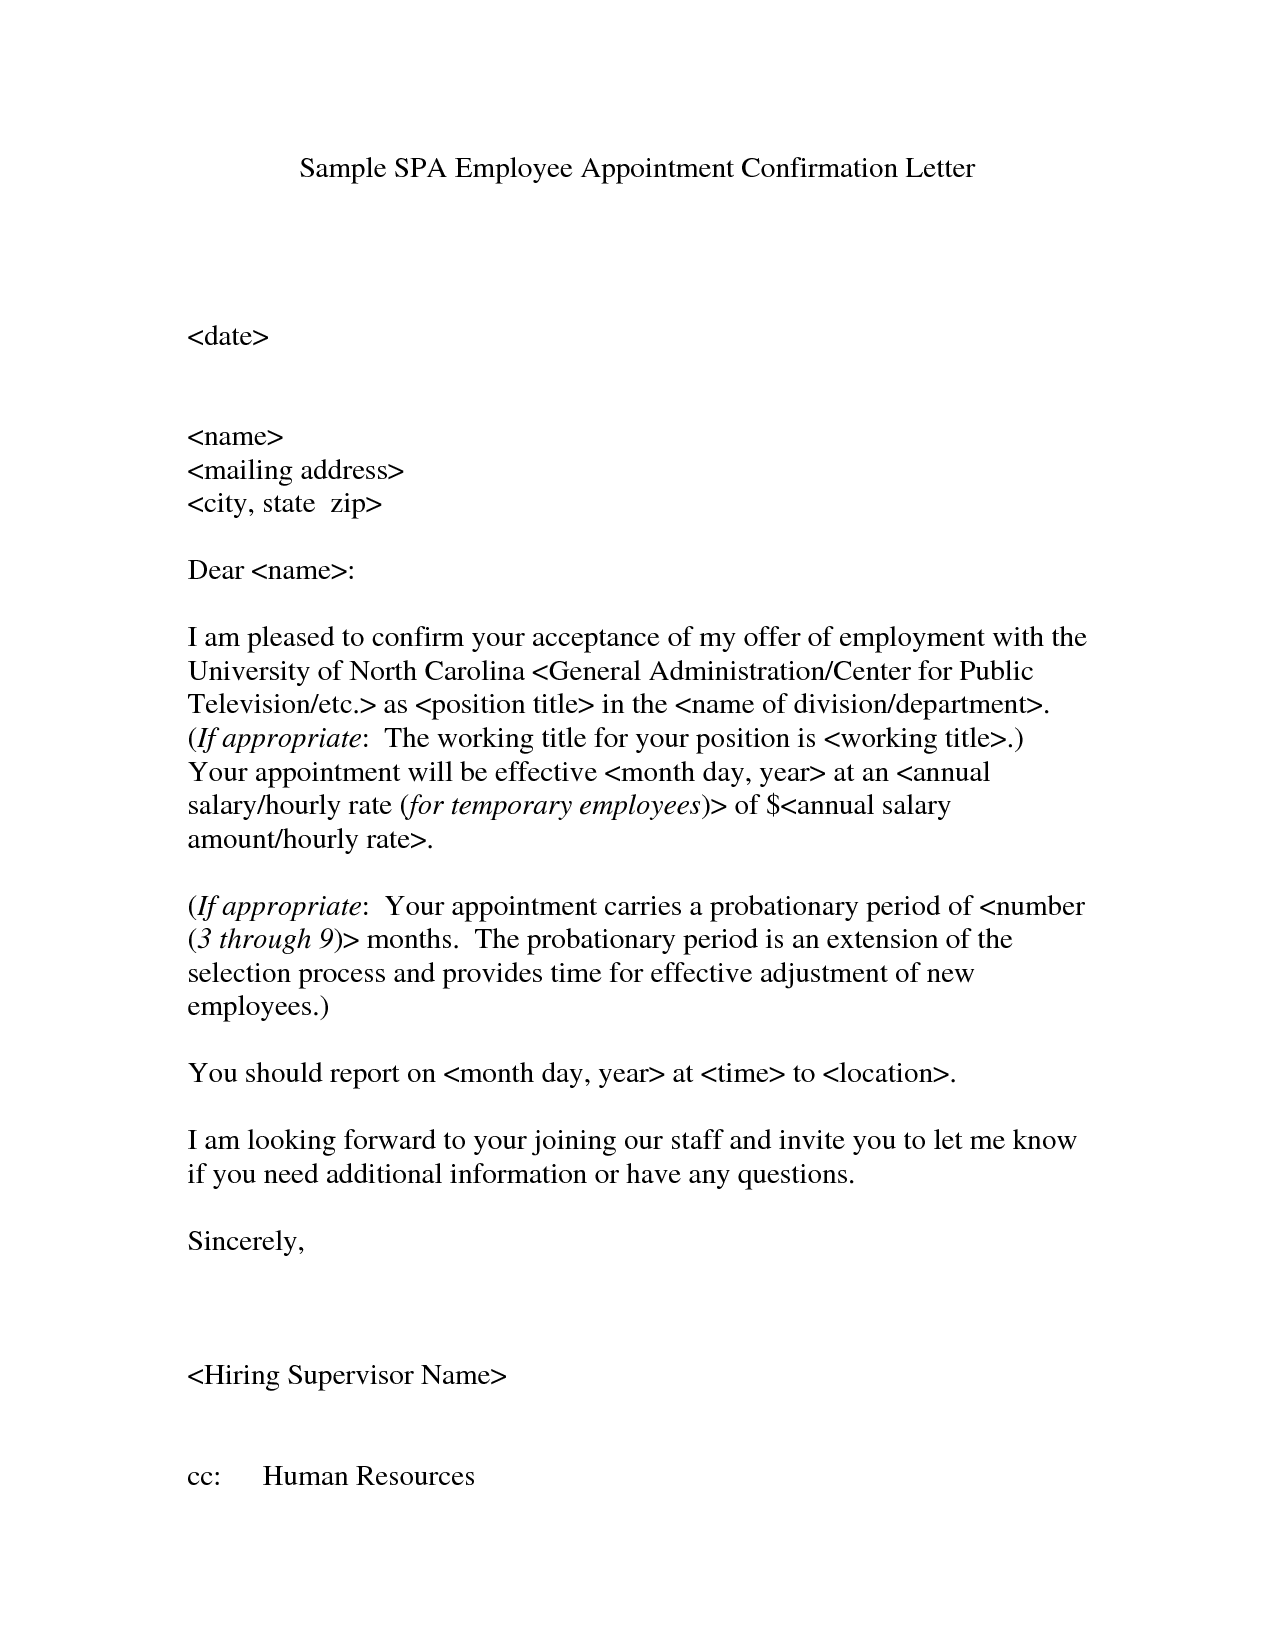 Appointment confirmation letter confirmation of appointment letter appointment confirmation letter confirmation of appointment letter sample helps you how to write a letter of confirmation of appointment altavistaventures Choice Image